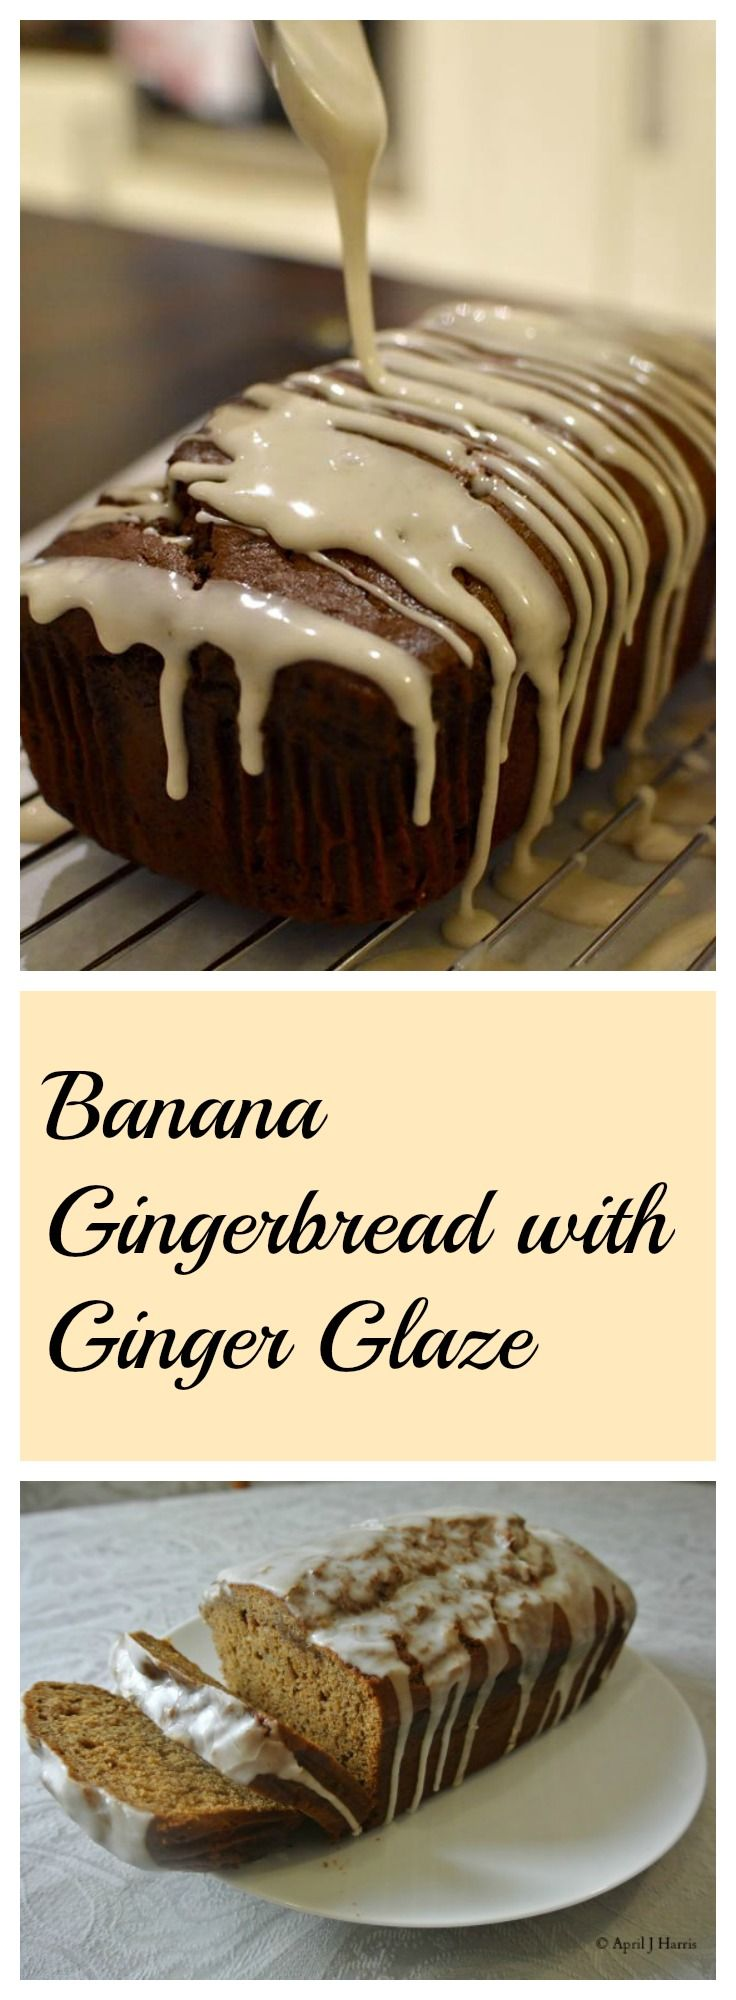 Banana Gingerbread with Ginger Glaze